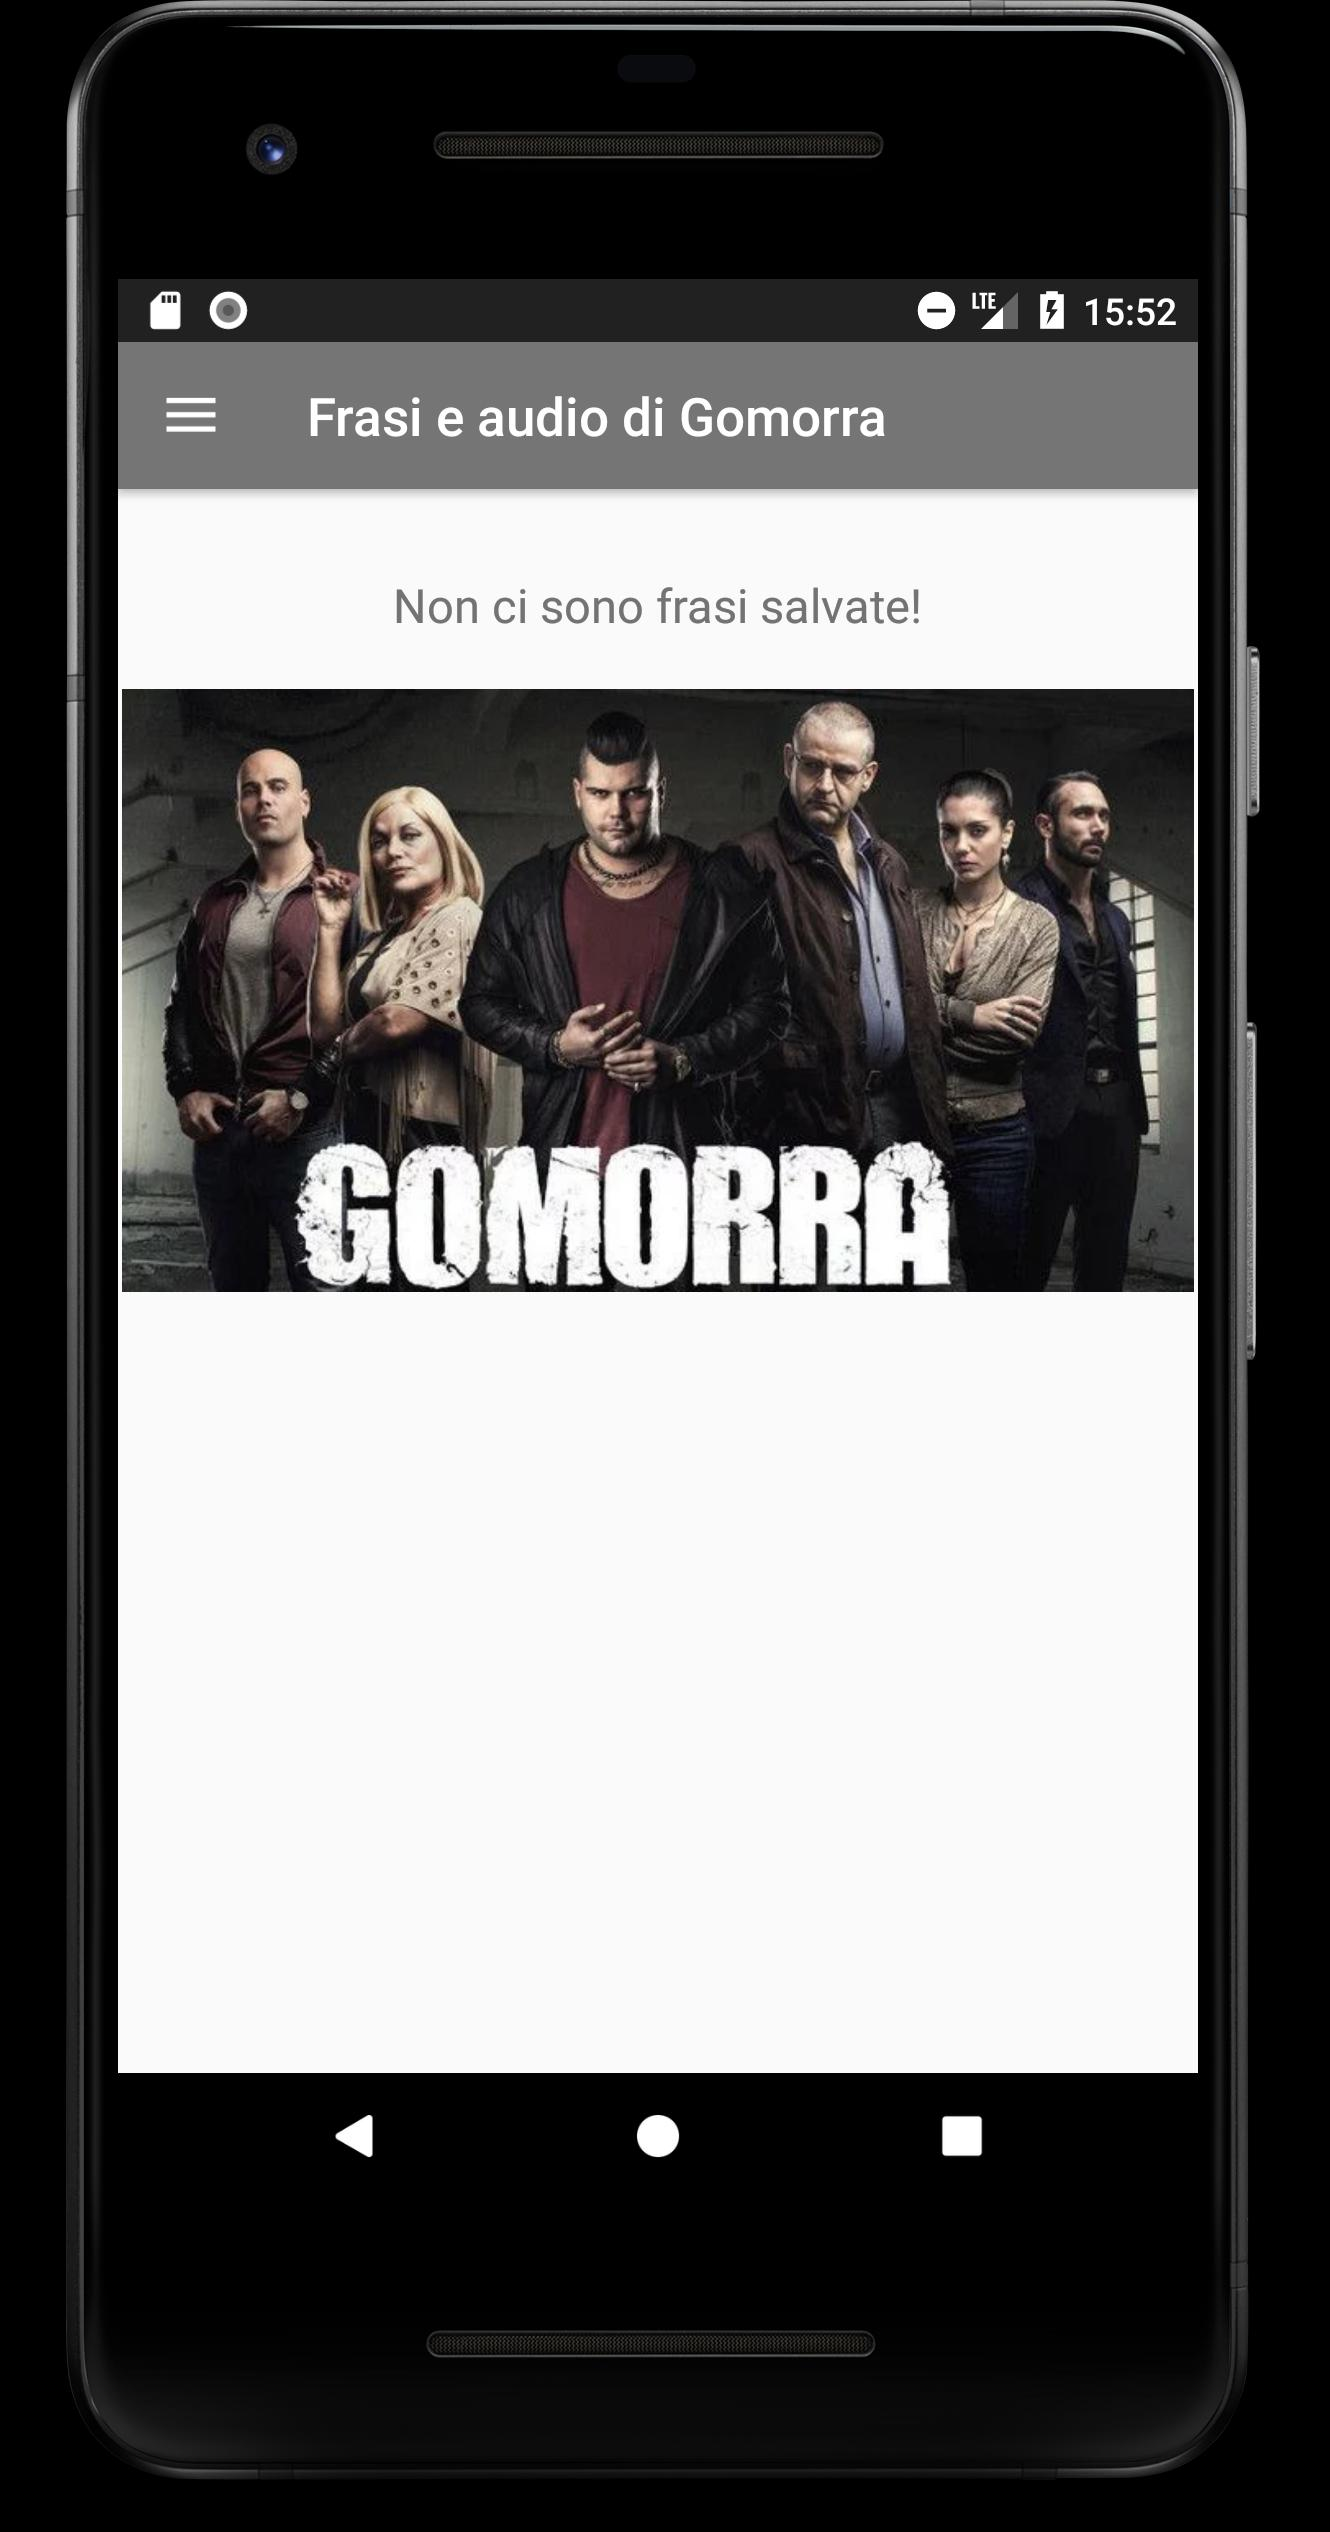 Frasi E Audio Di Gomorra For Android Apk Download